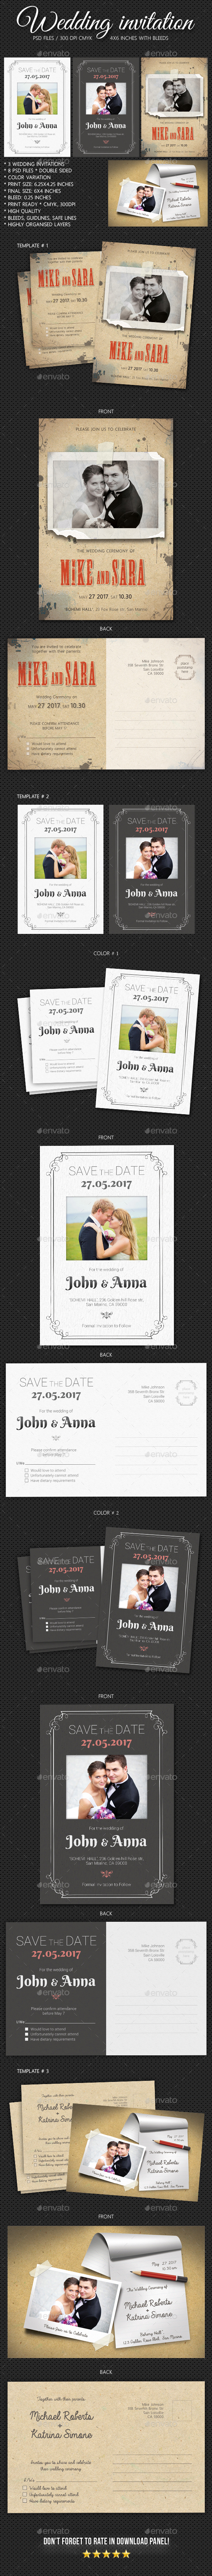 Wedding Invitation Bundle 2 - Weddings Cards & Invites